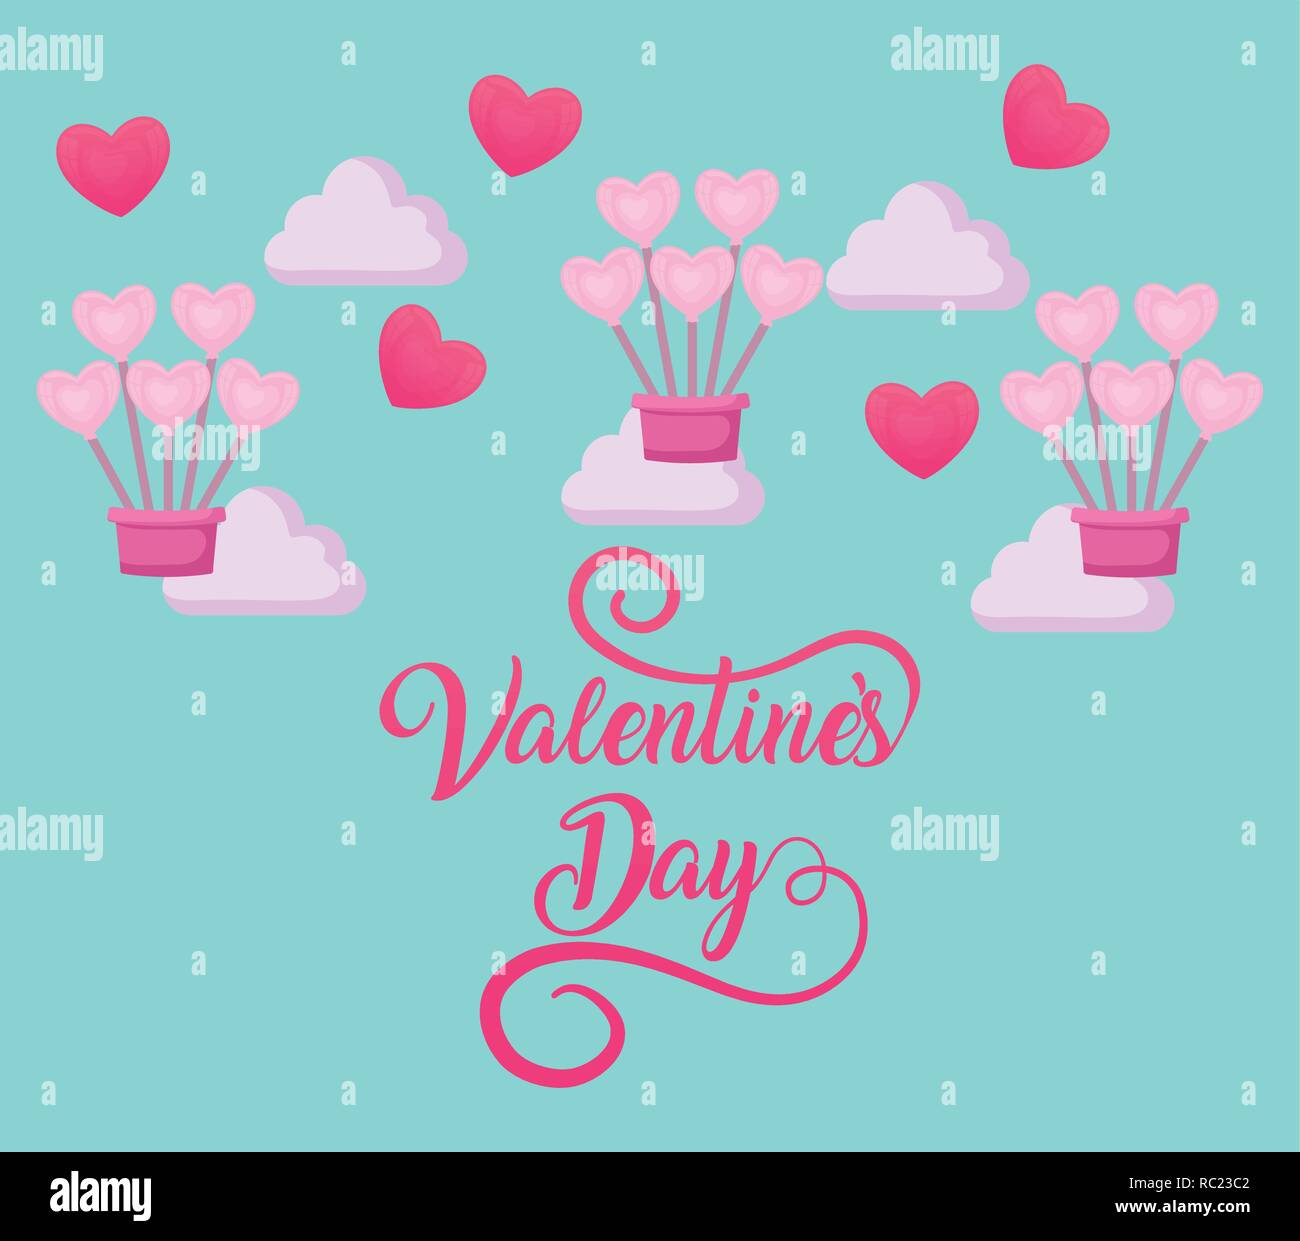 valentines day card with balloons air hot vector illustration design - Stock Vector